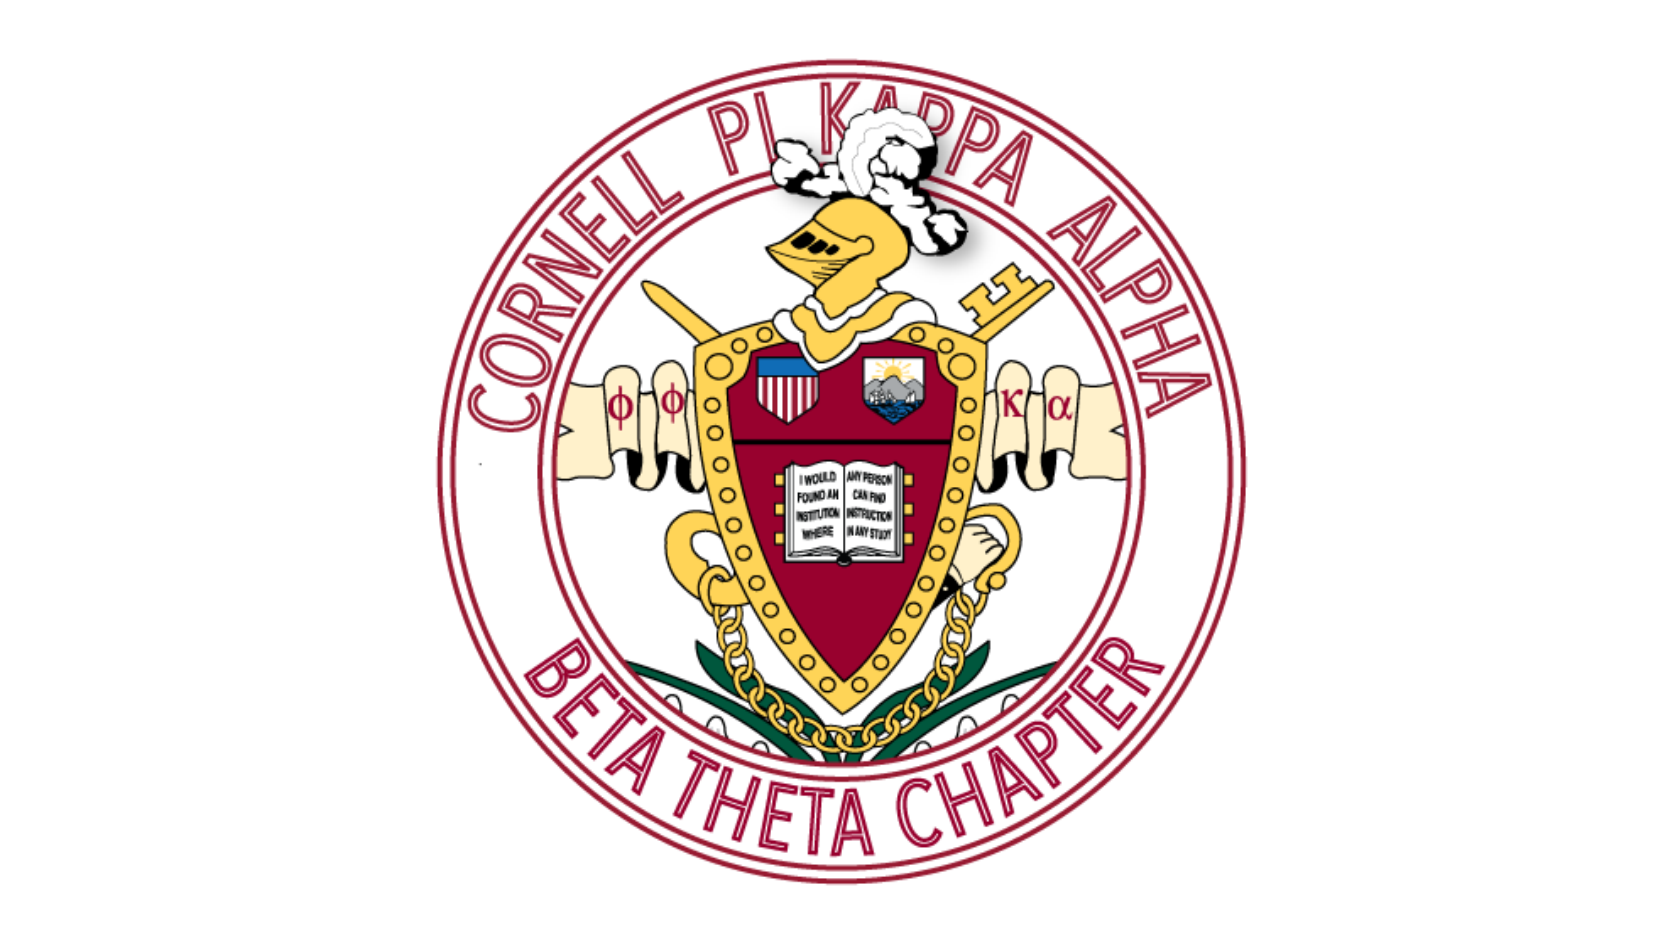 Pi Kappa Alpha at Cornell Logo